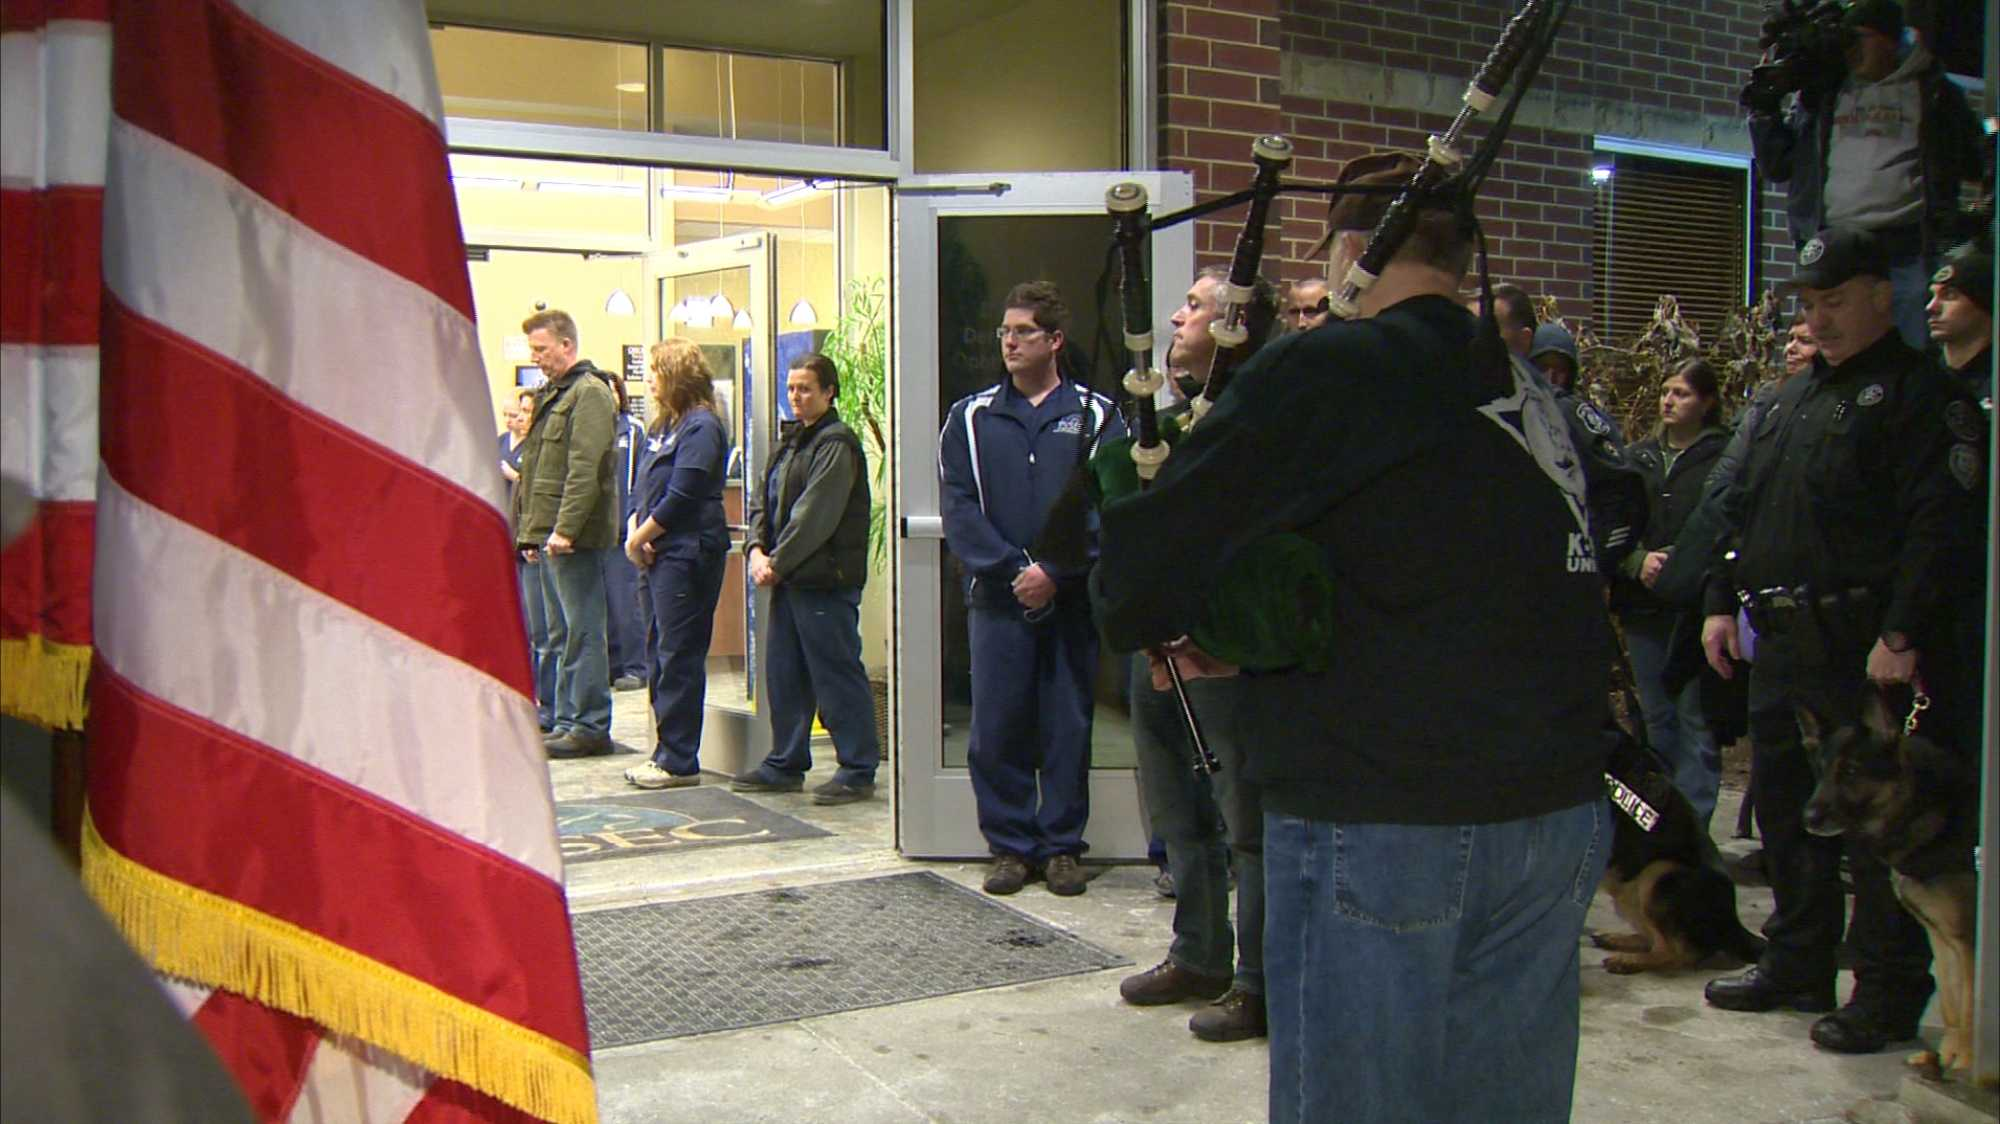 With an American flag draped over his coffin, Rocco's body was escorted out of the Pittsburgh Veterinary Specialty Emergency Center by his fellow officers while others stood close by and saluted the K-9. (Click HERE to watch video)